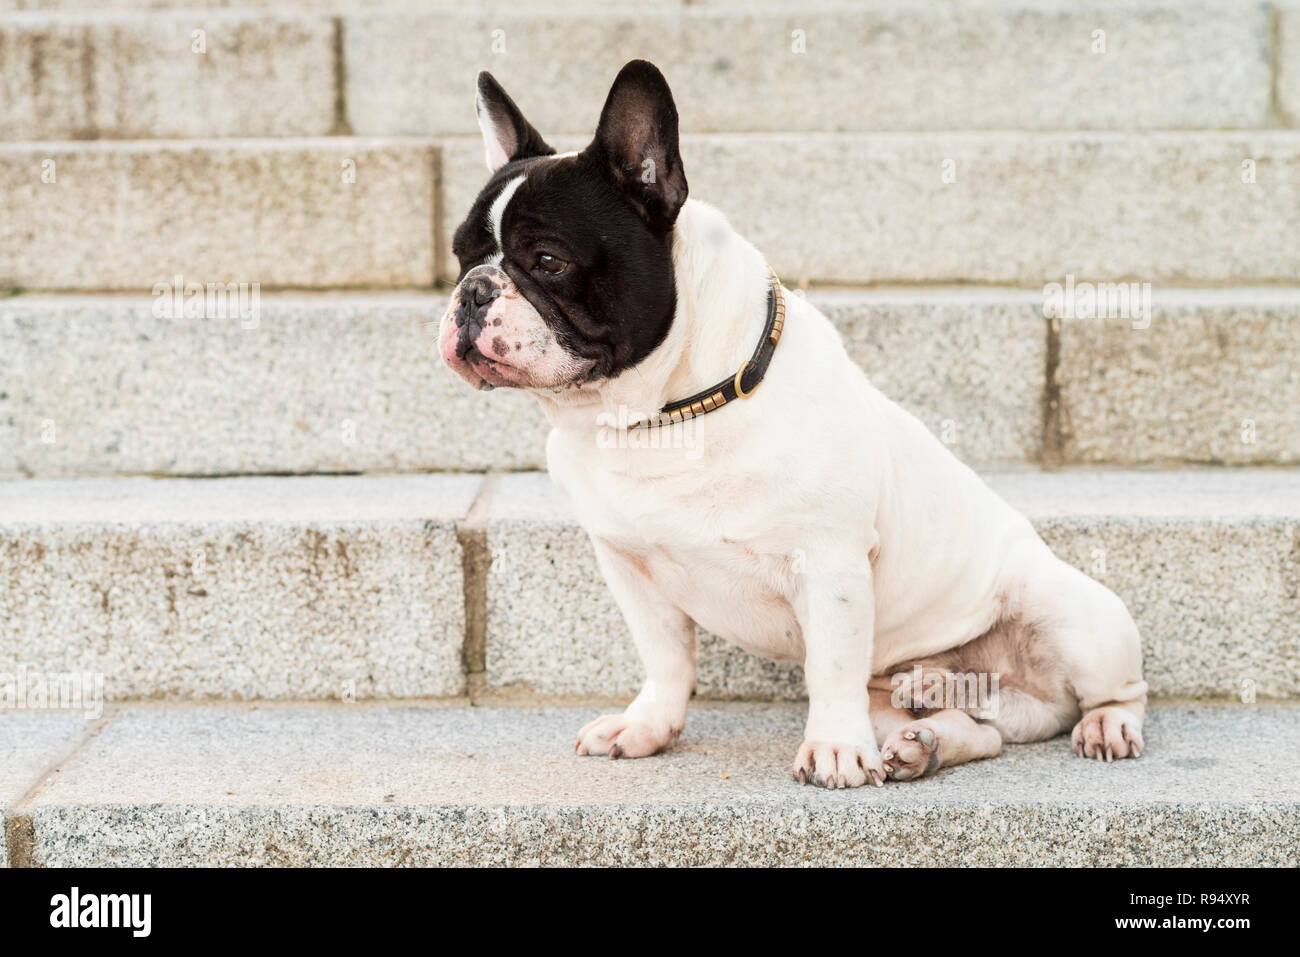 Urban scene. Dog sitting on a stairs in the street. Stock Photo